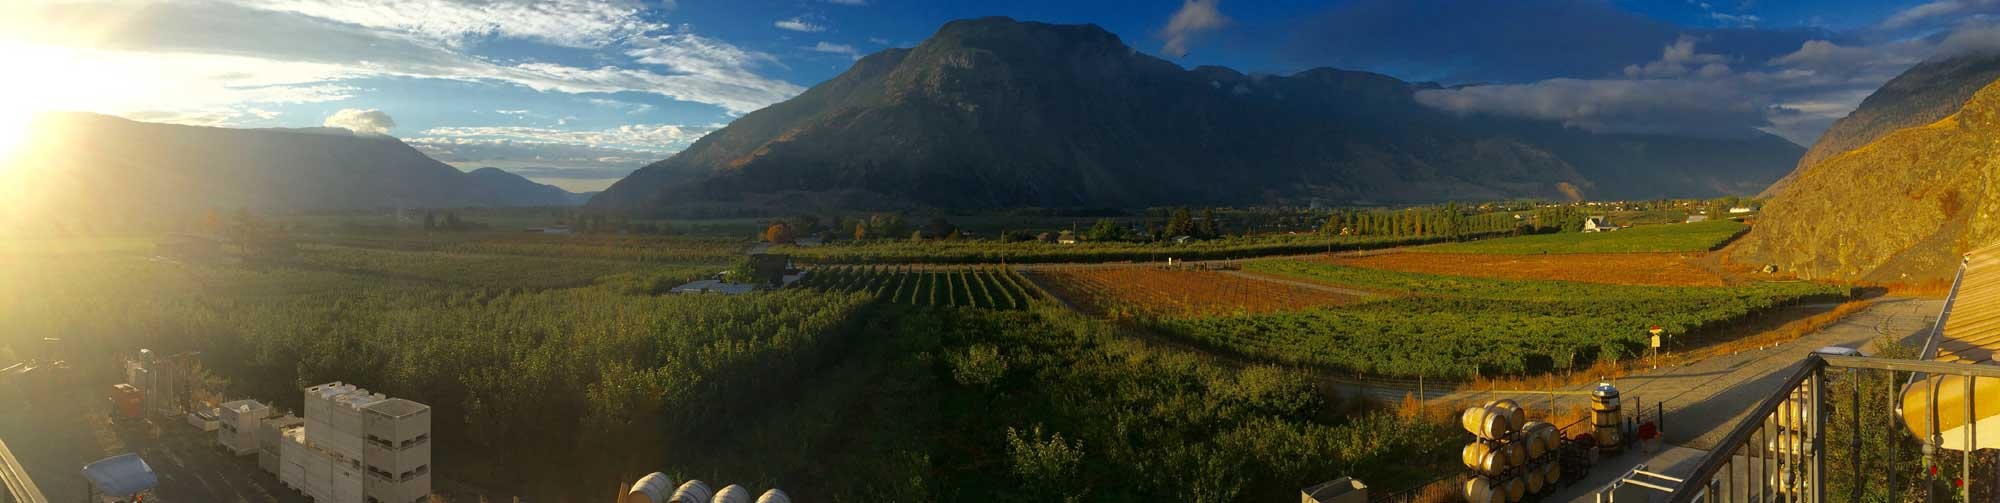 Similkameen Wine Growing Country